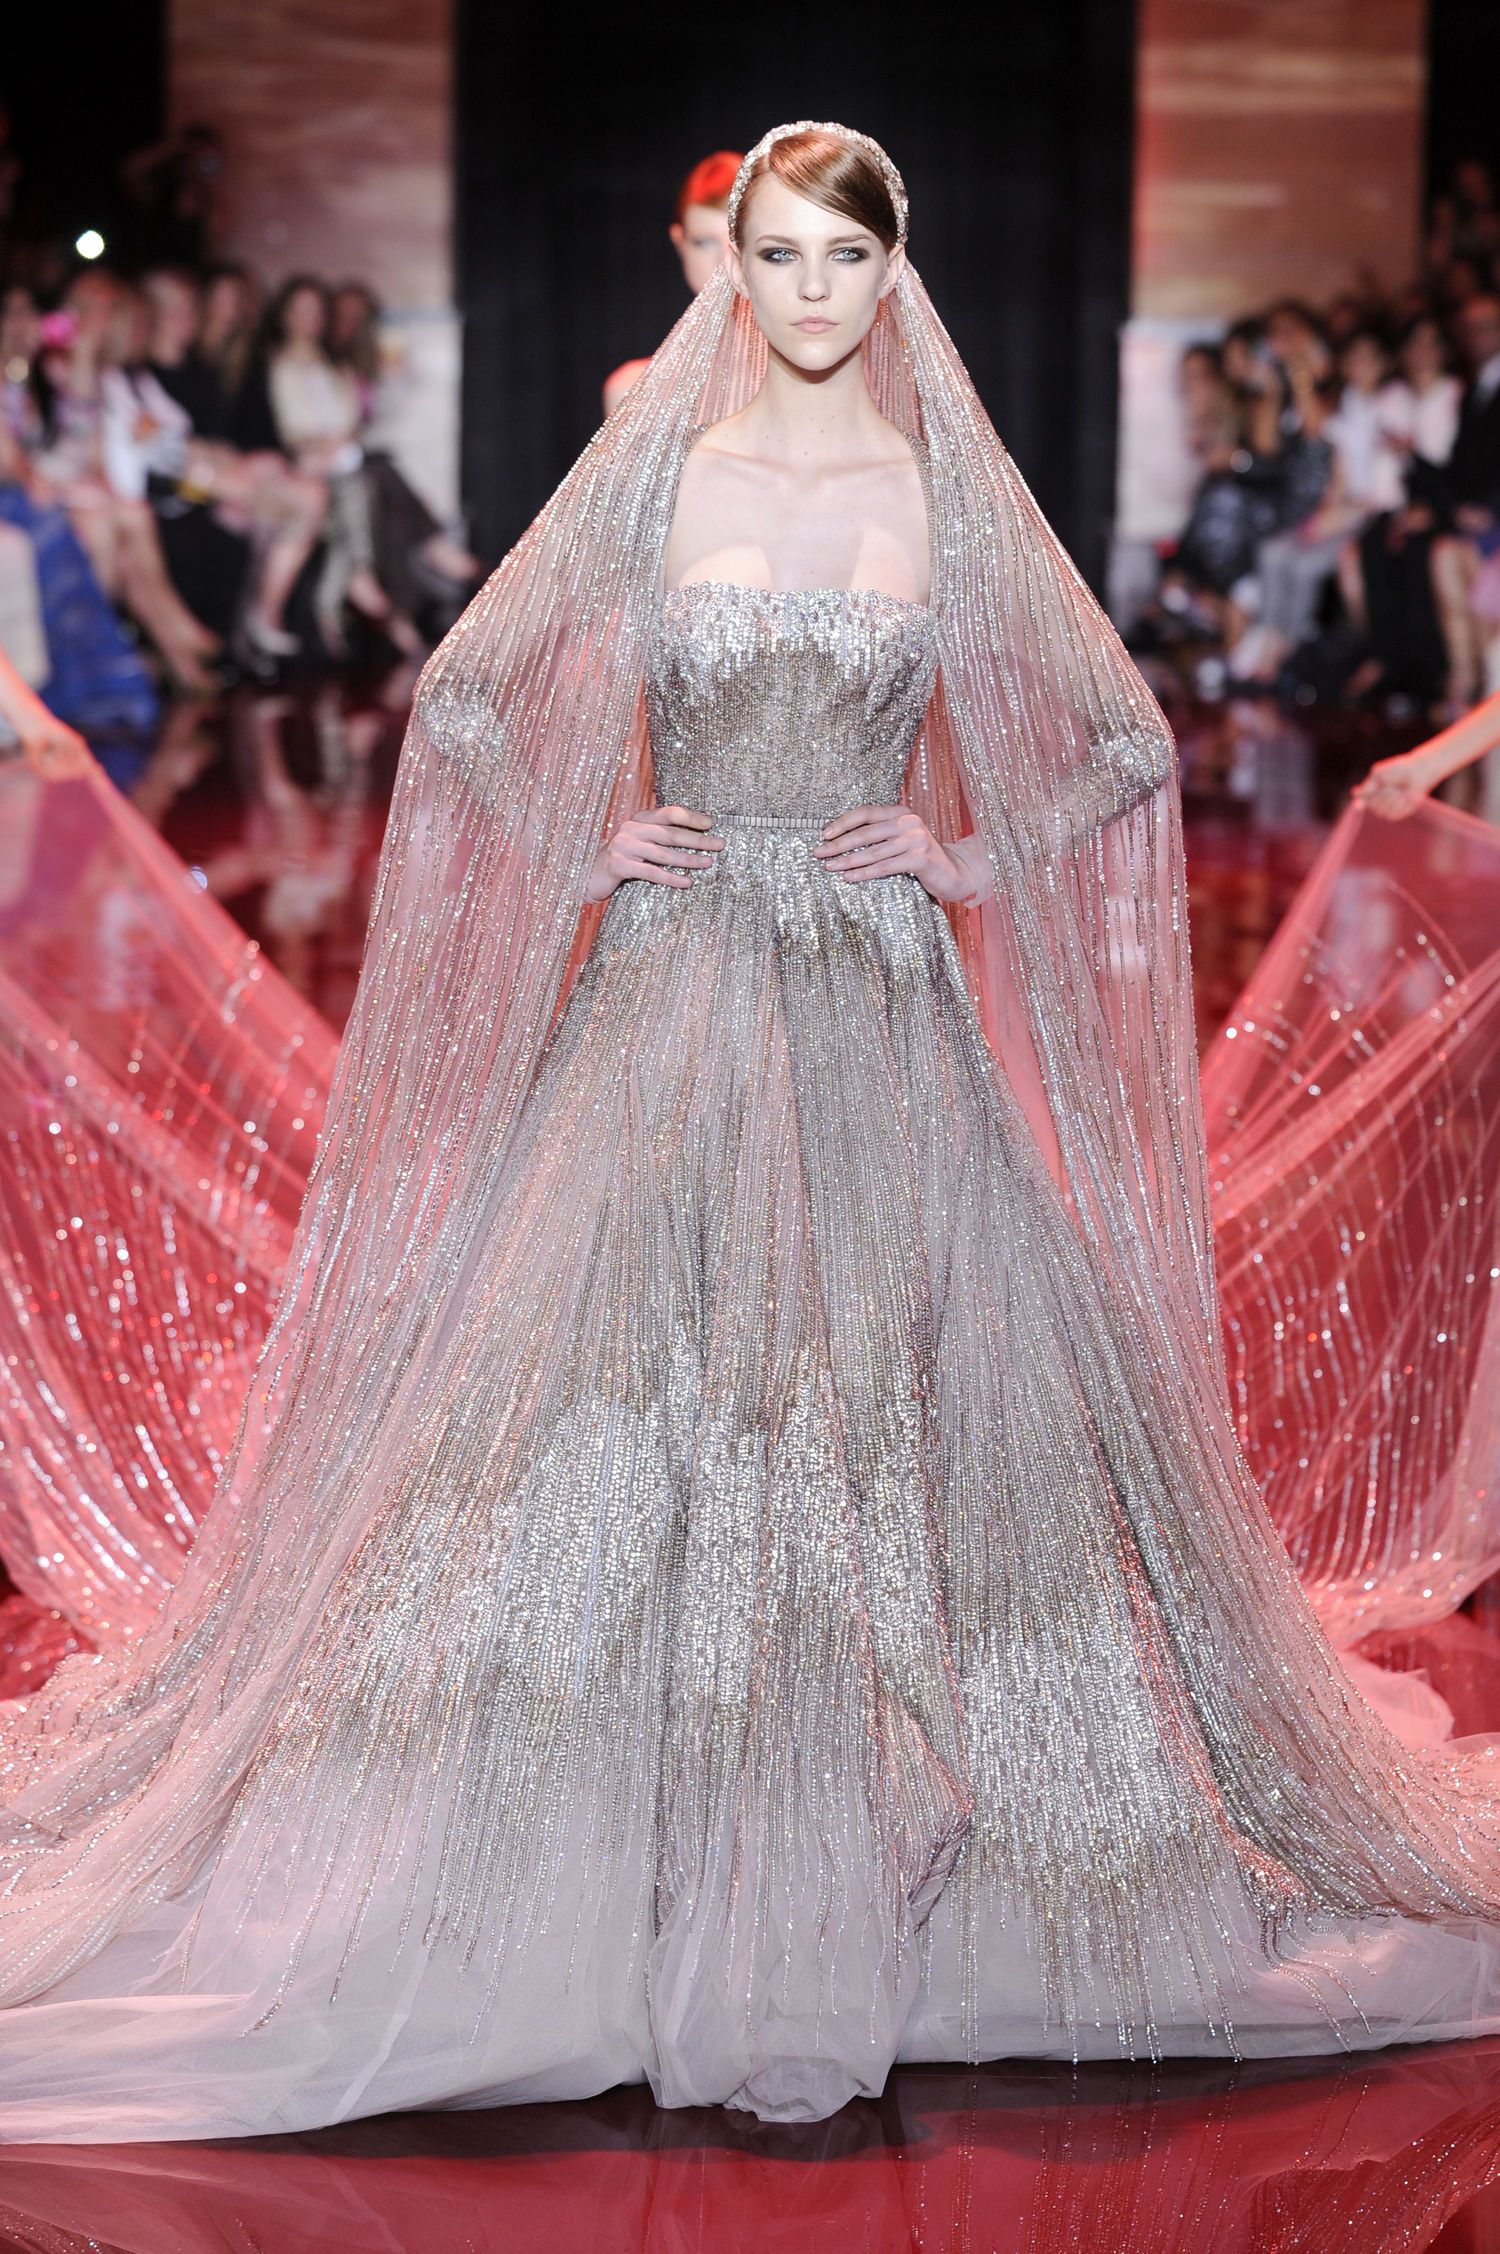 Haute Couture Wedding Gowns Eliesaabweddingdressesweddinggownshaute Couturefall20130710: Haute Couture Wedding Dress Sitting At Reisefeber.org